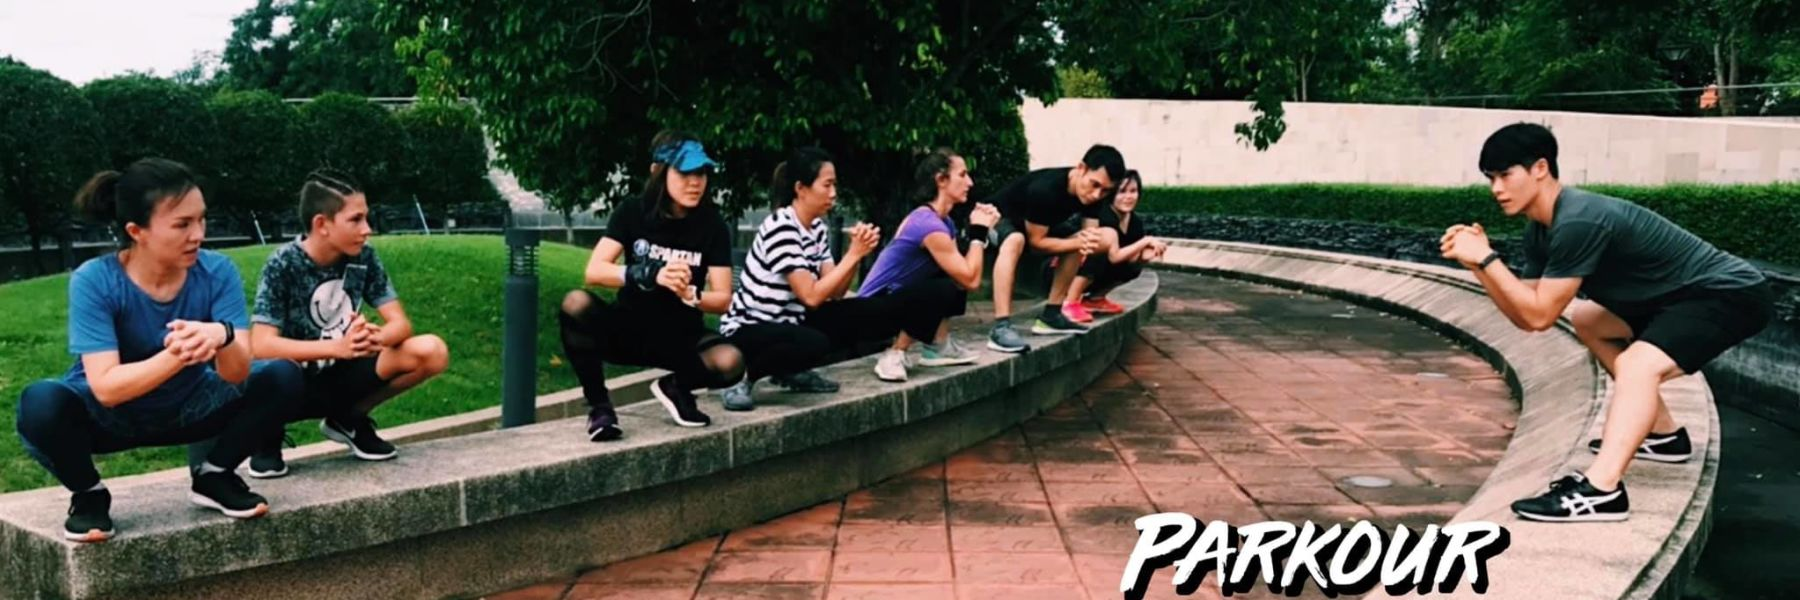 Parkour in the Park, by Movement Playground image